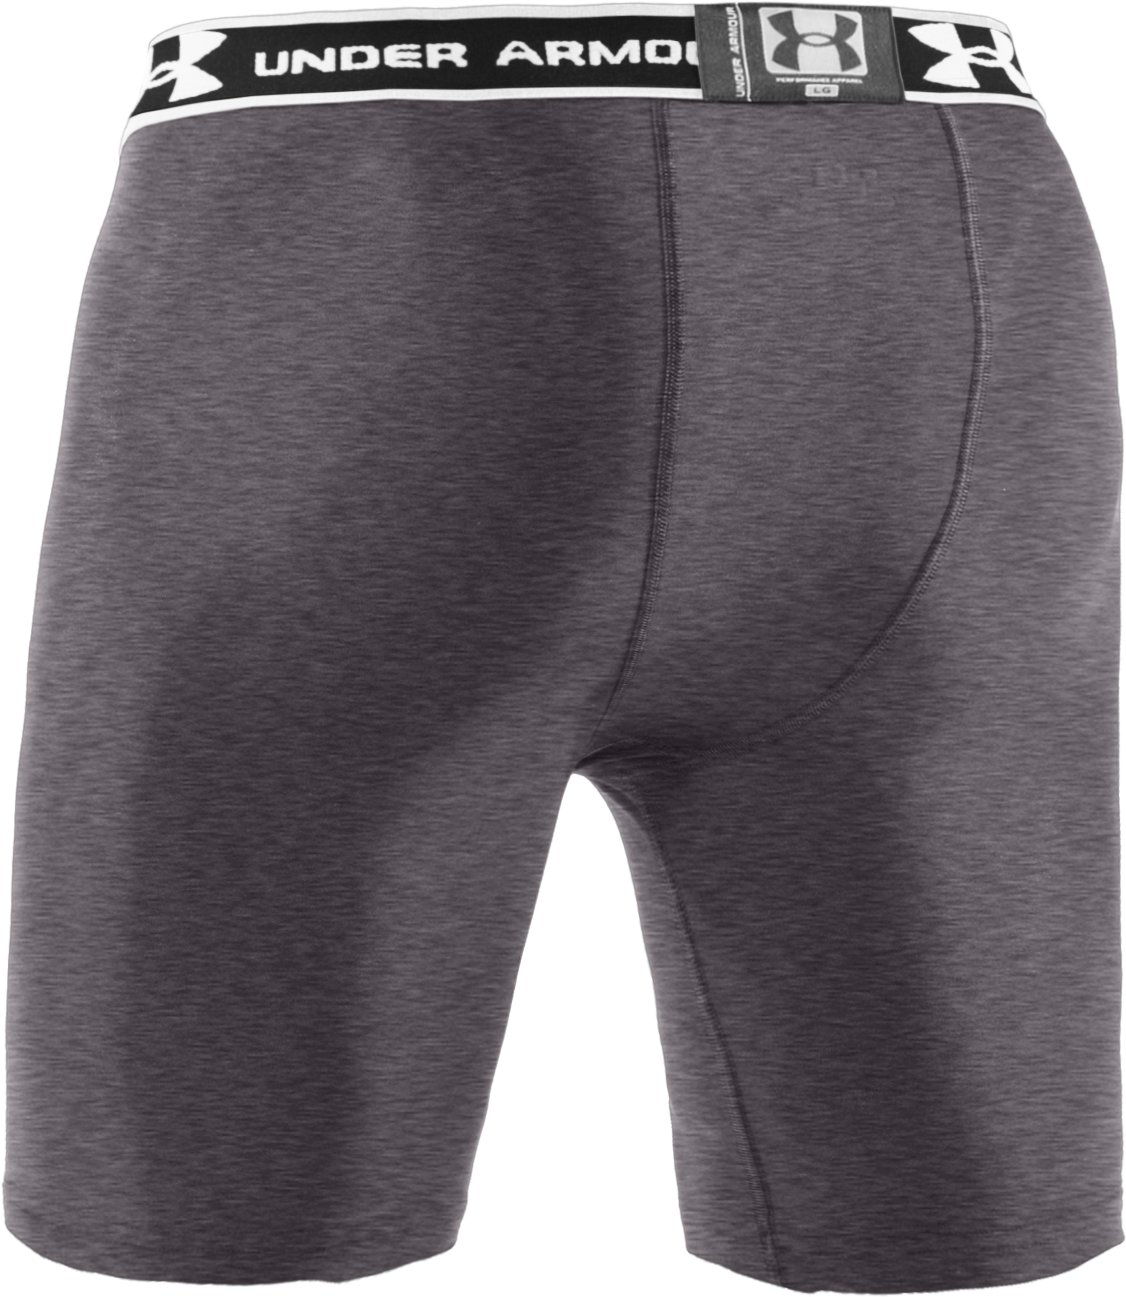 "Men's HeatGear® Compression 7"" Shorts, Carbon Heather"